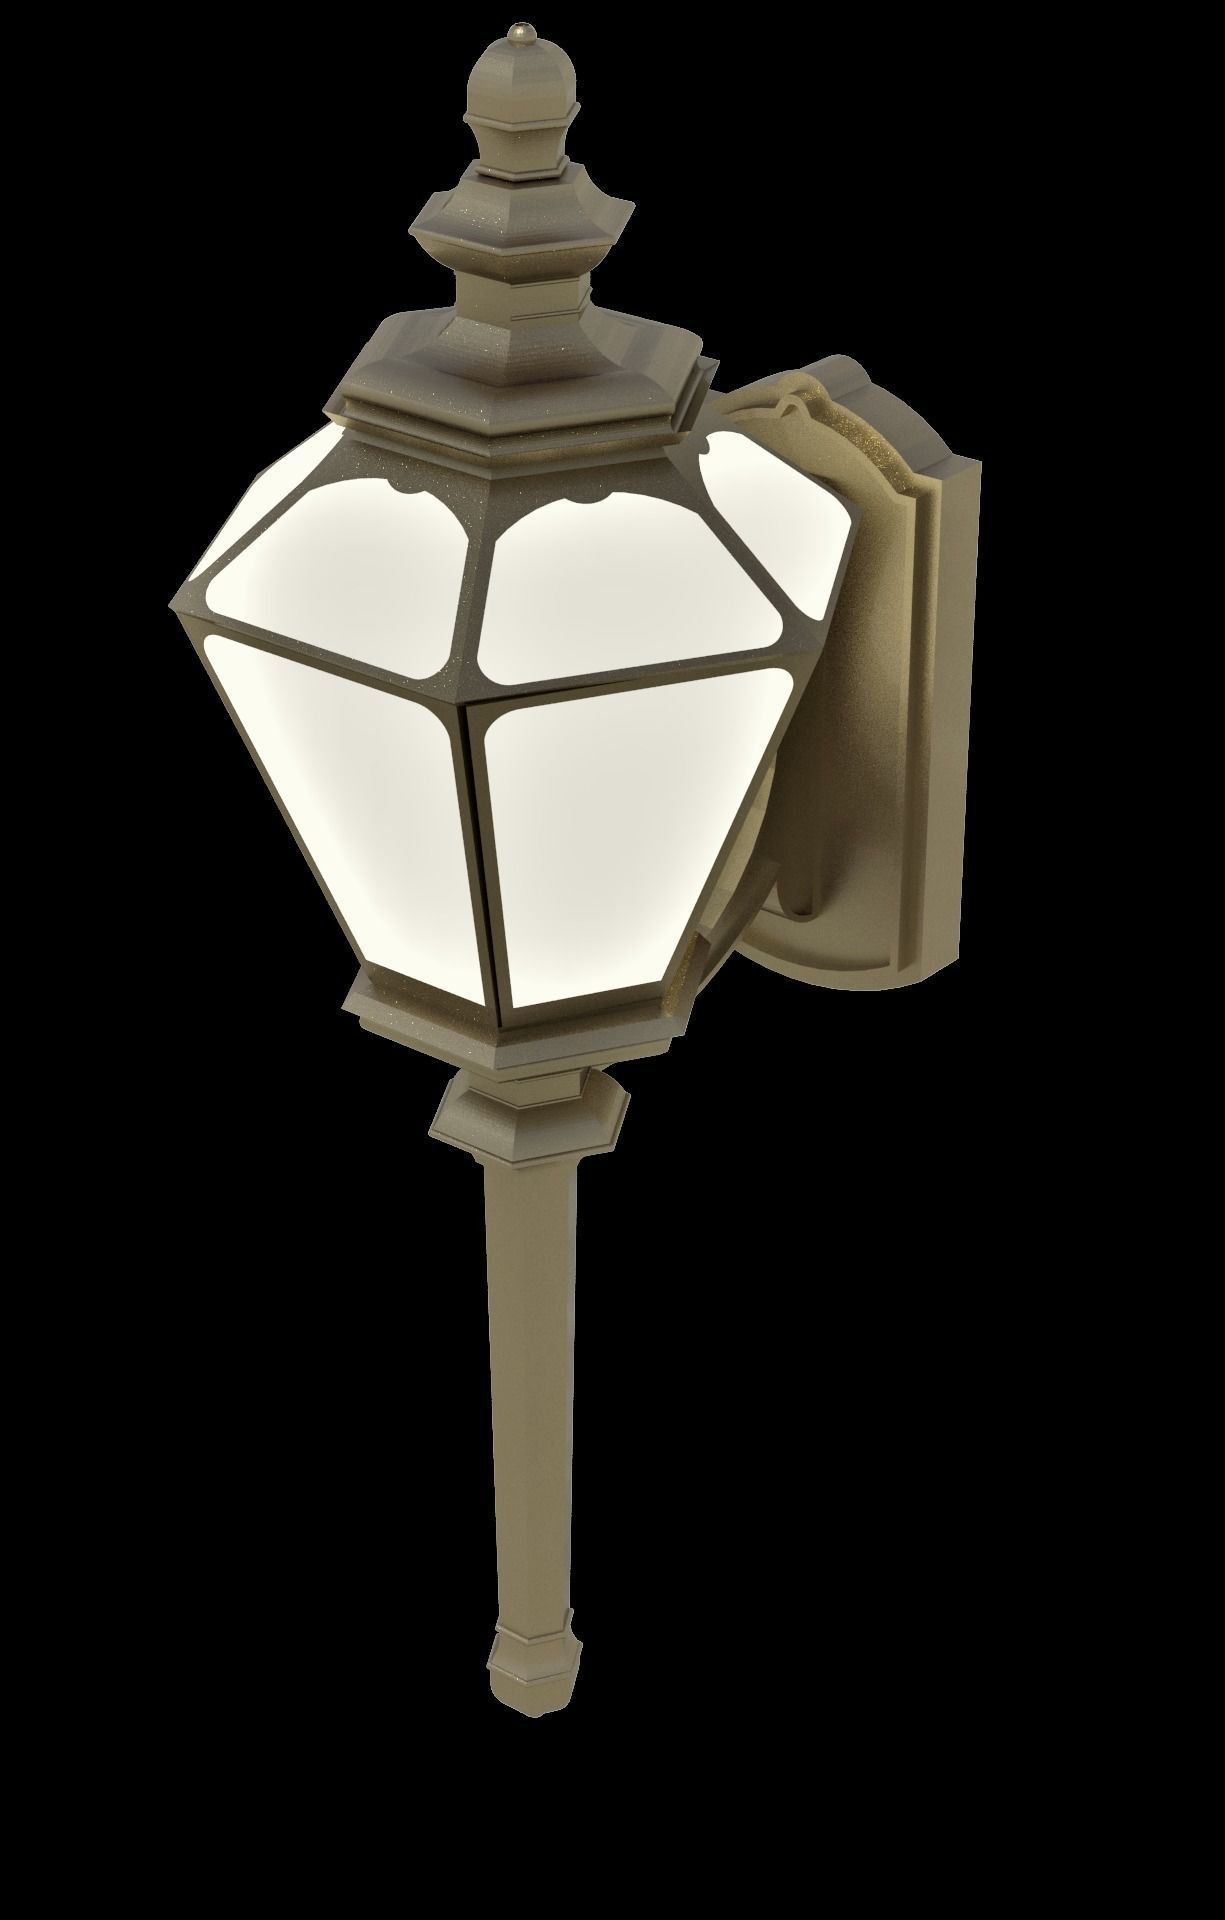 Wall hung ornate architectural scene light exterior fixture